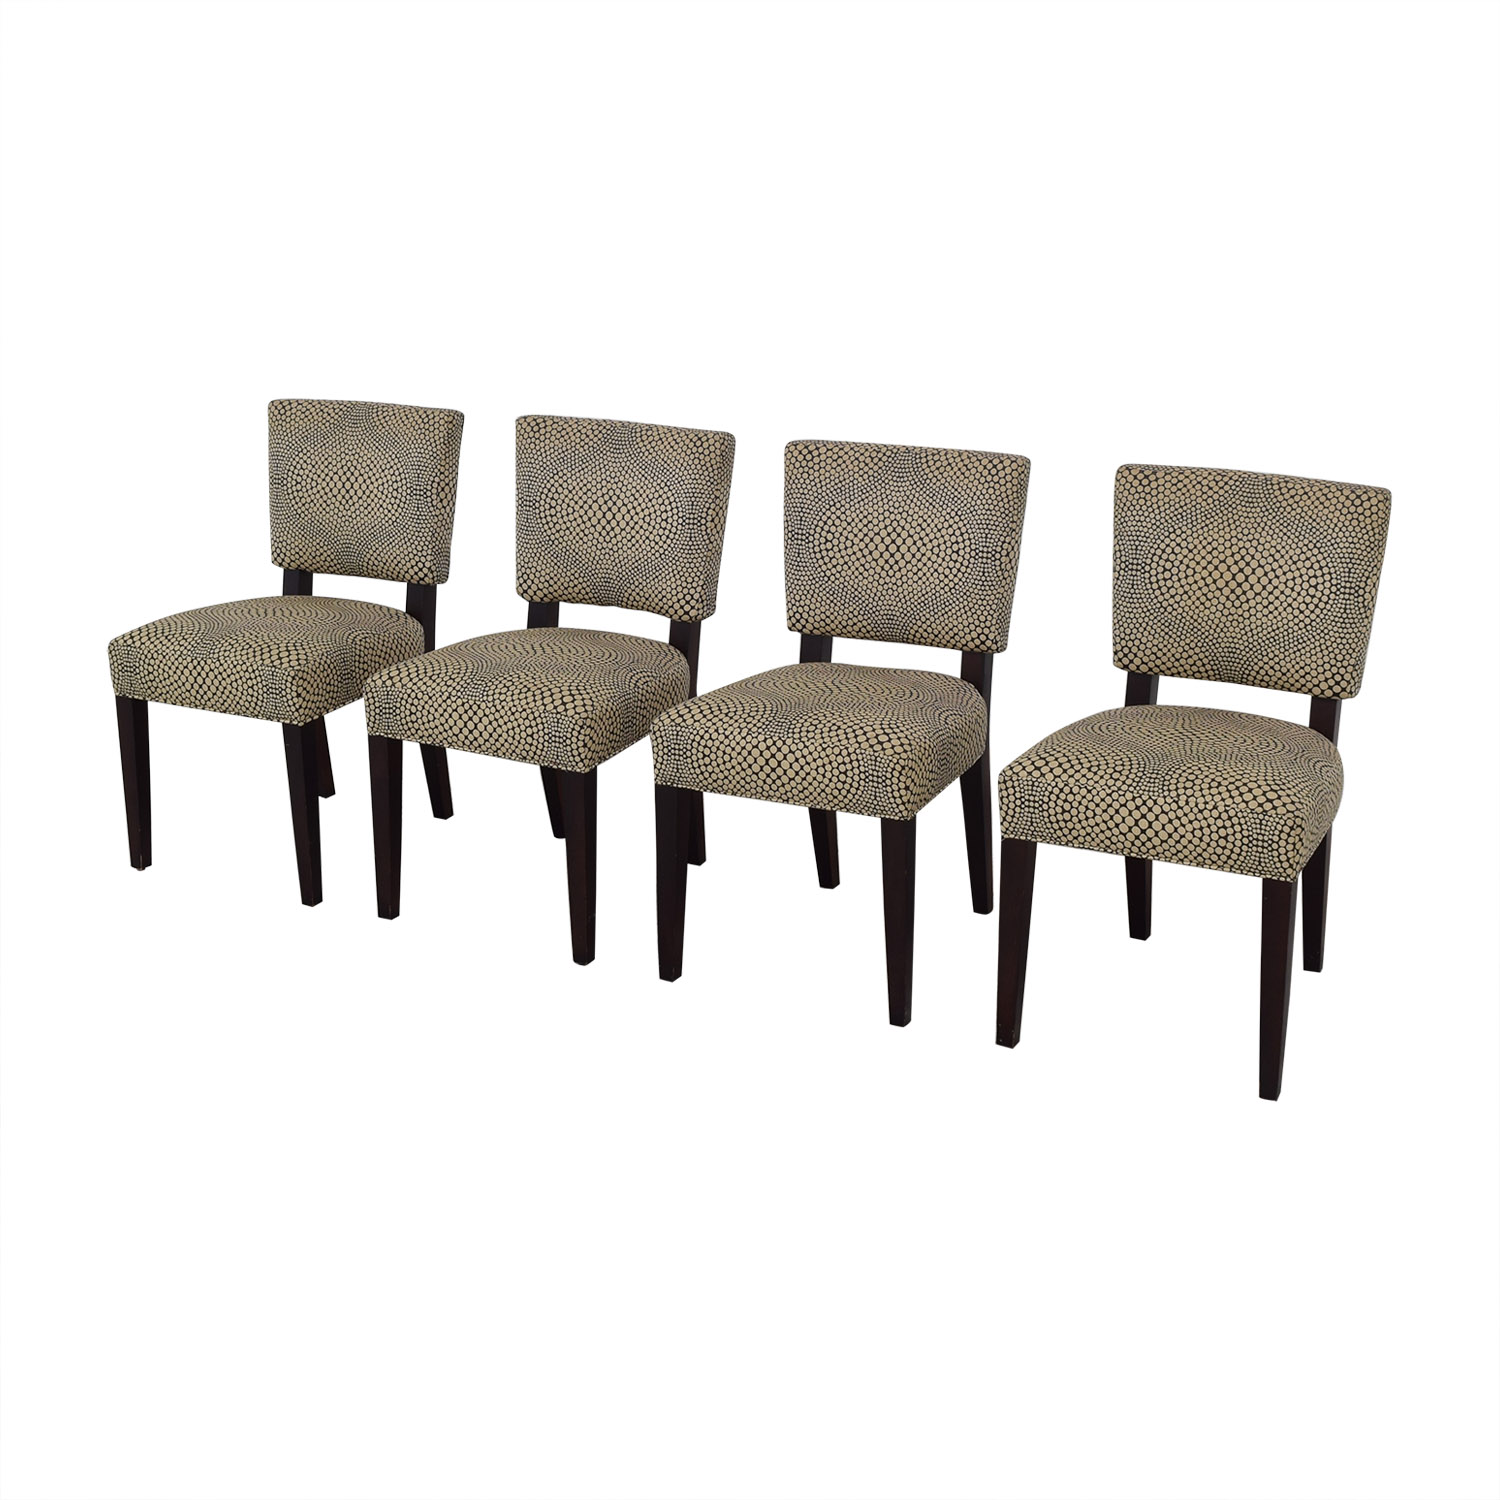 Room & Board Room & Board Dining Chairs price